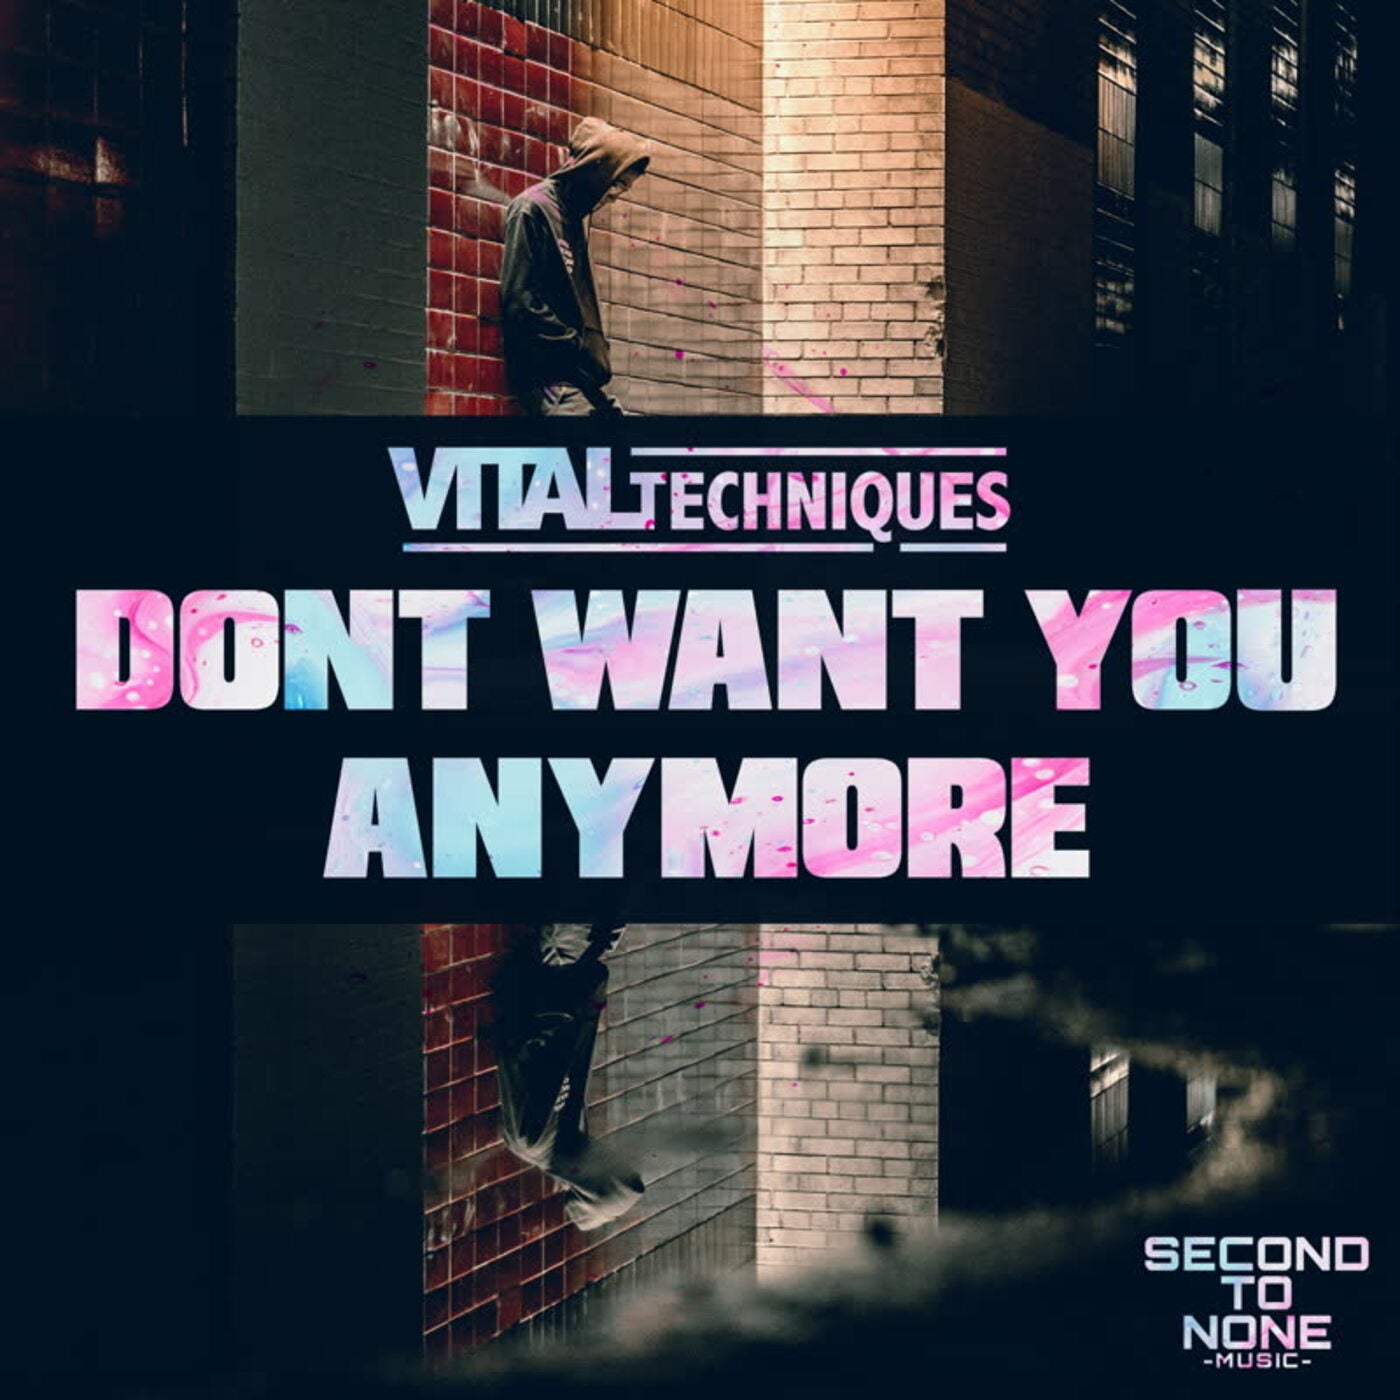 Don't Want You Anymore (Original Mix)